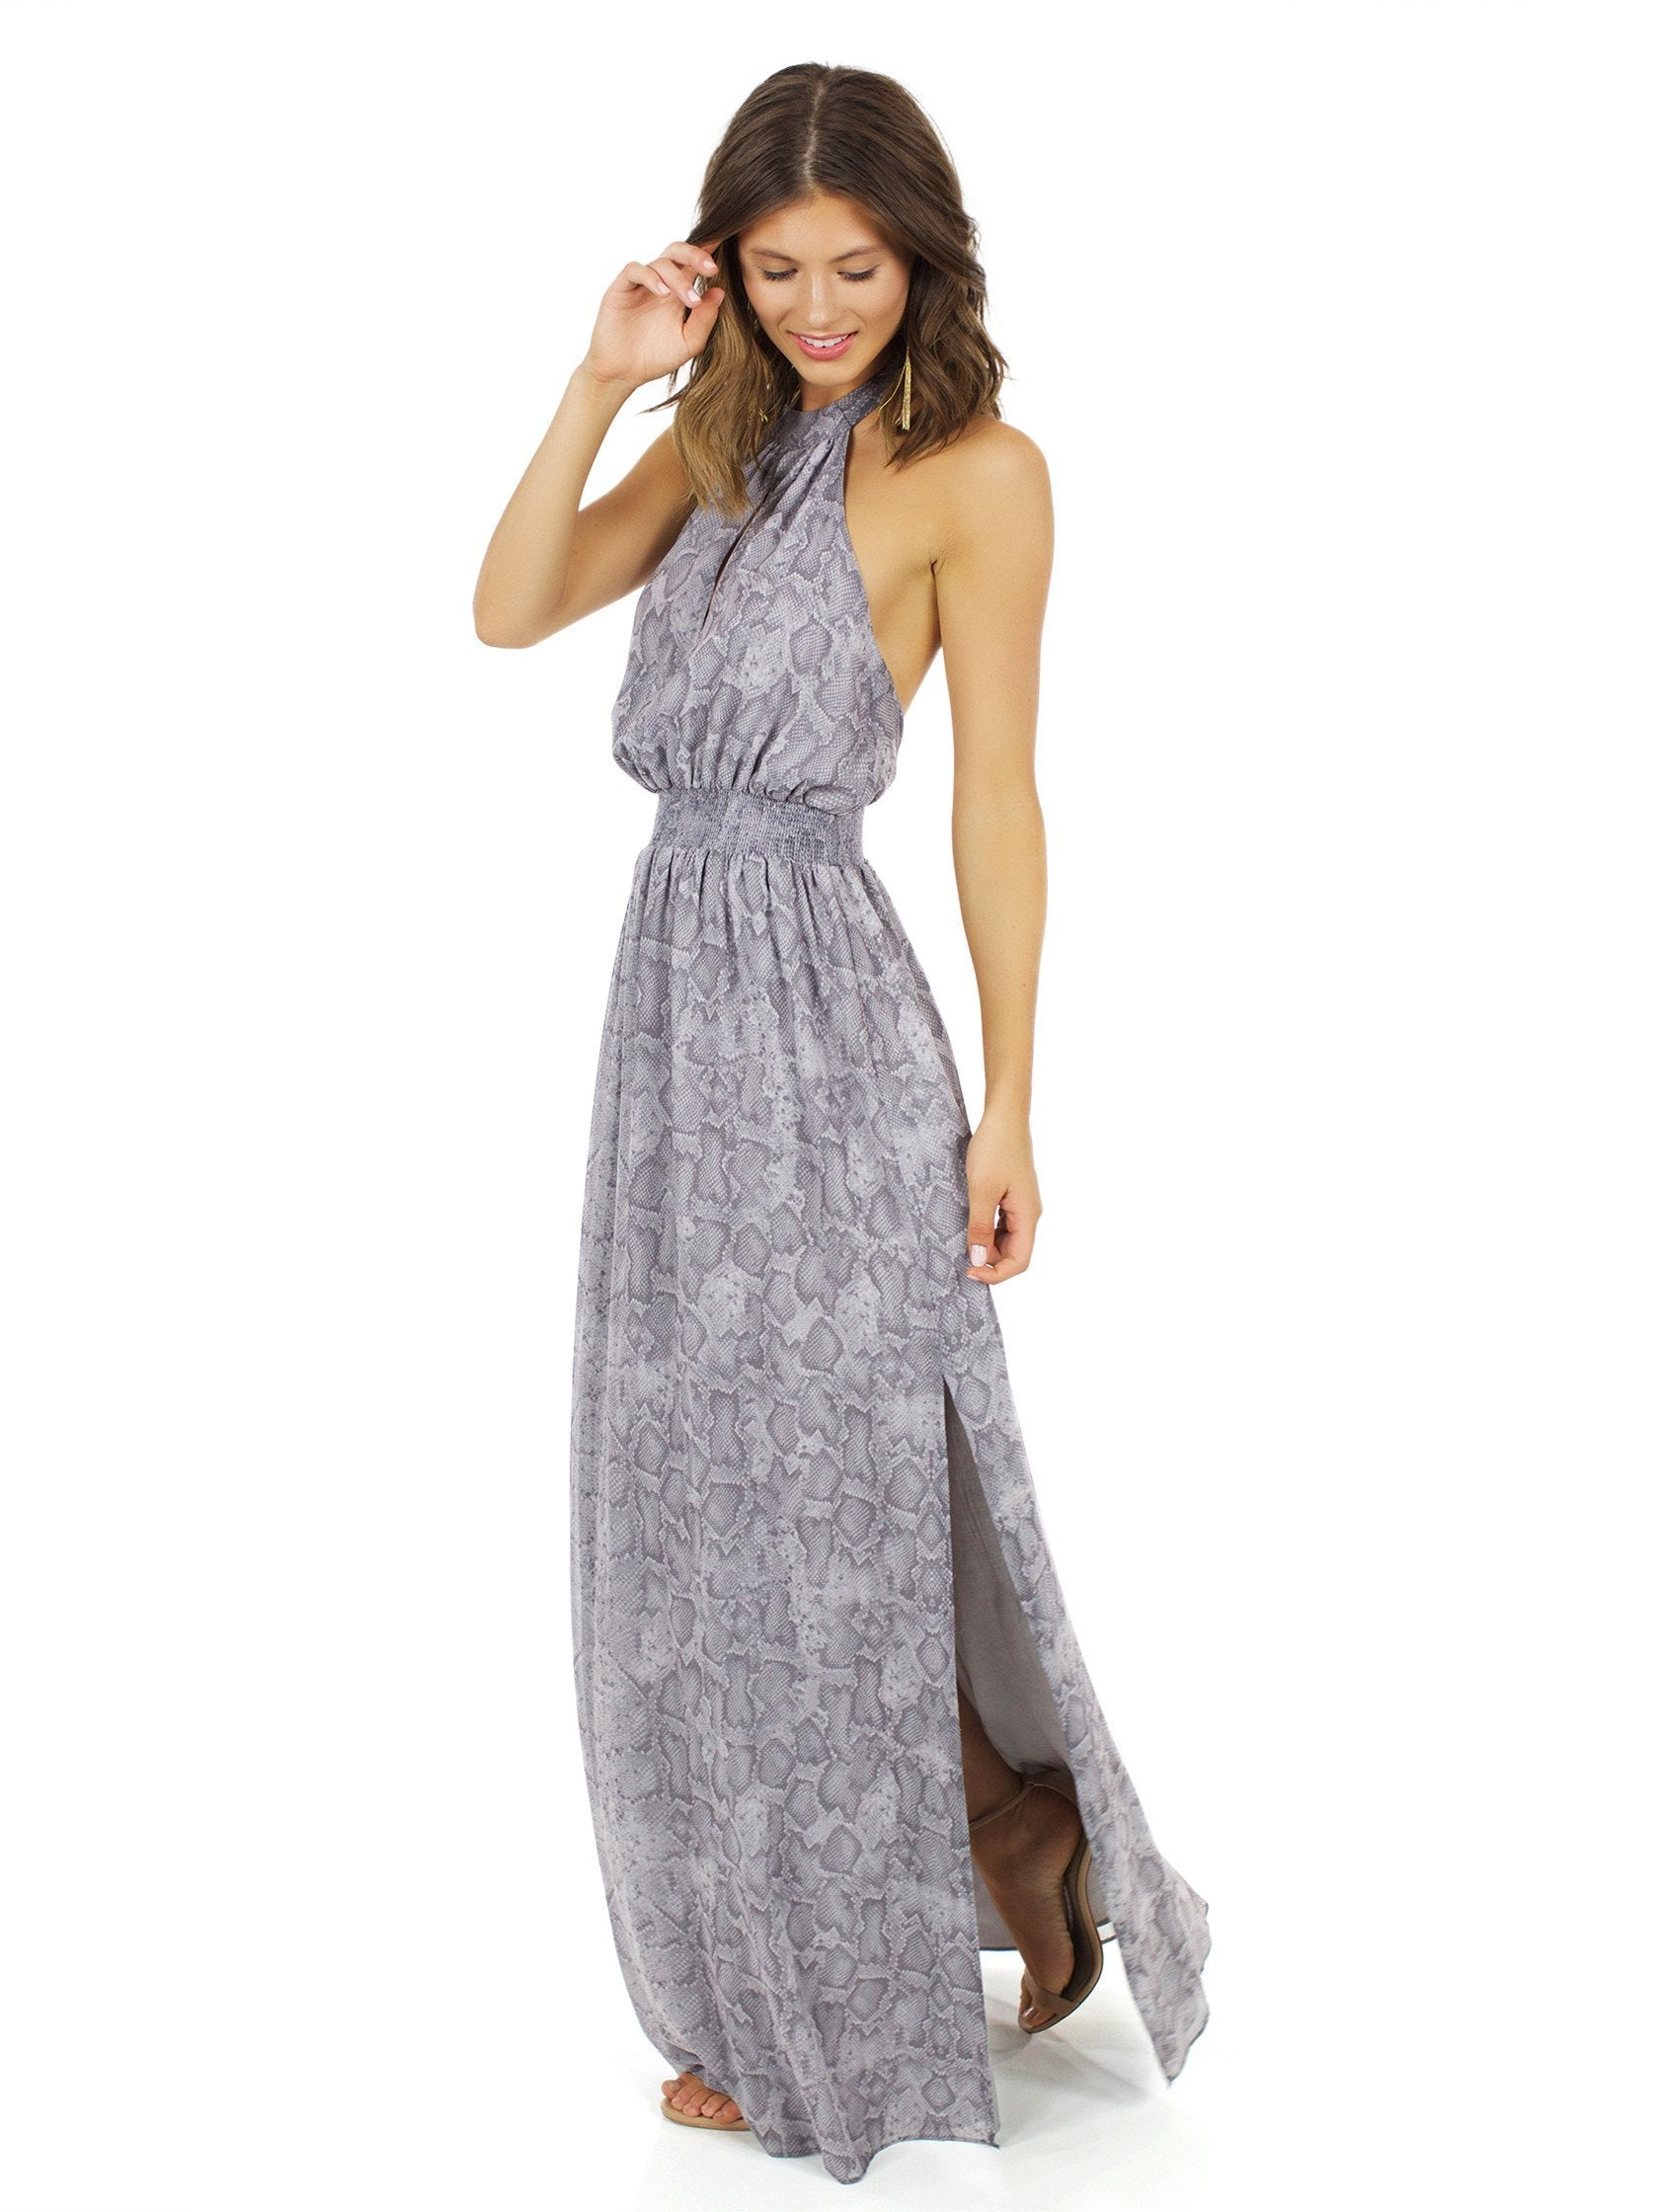 Woman wearing a dress rental from The Jetset Diaries called Medusa Maxi Dress